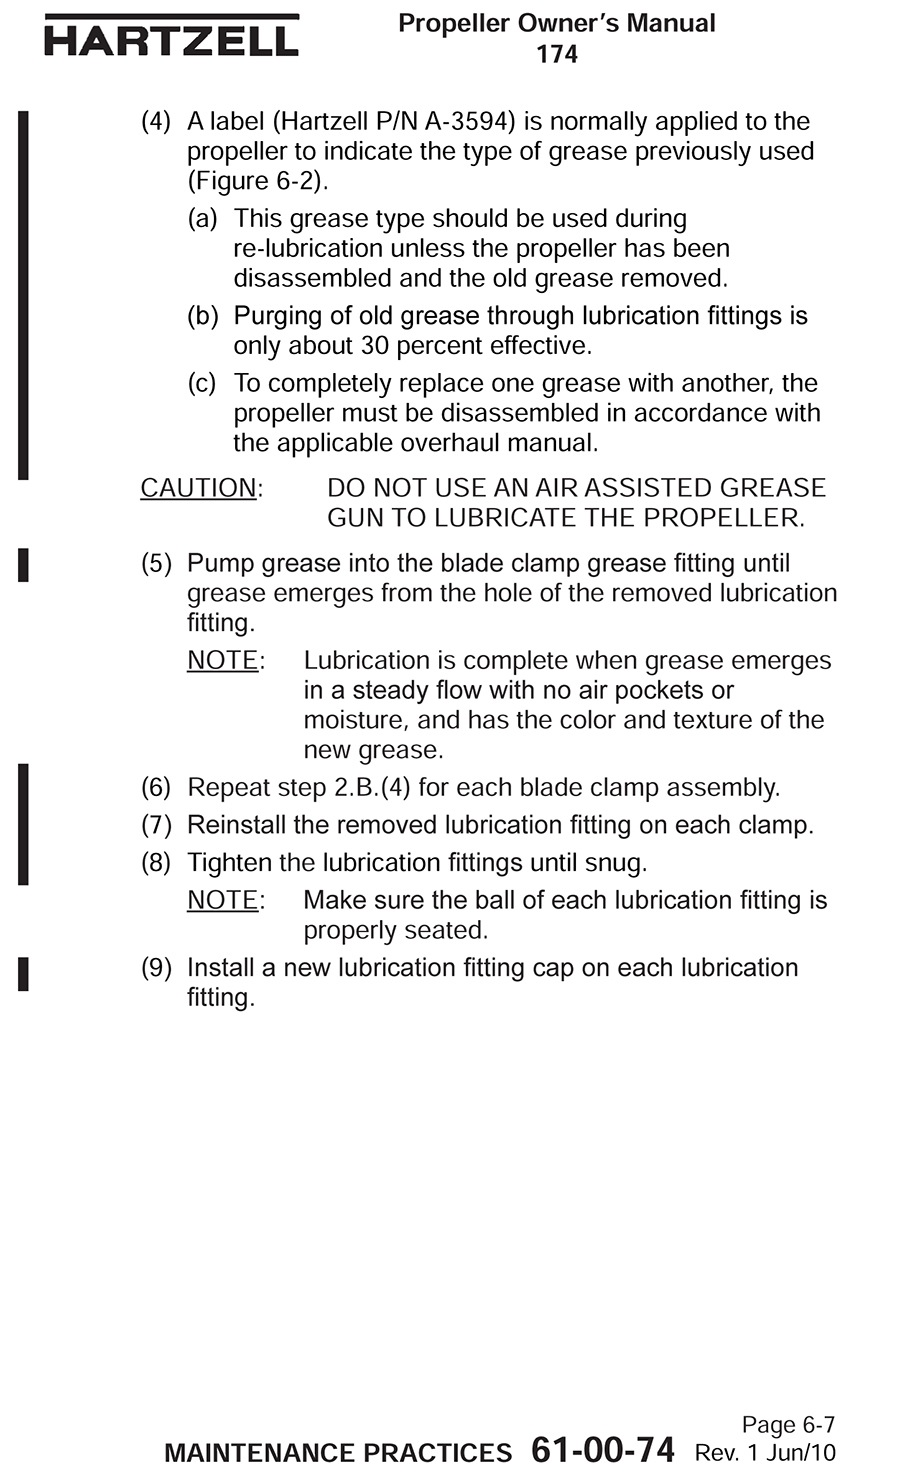 Hartzell Prop Manual 2010 page131